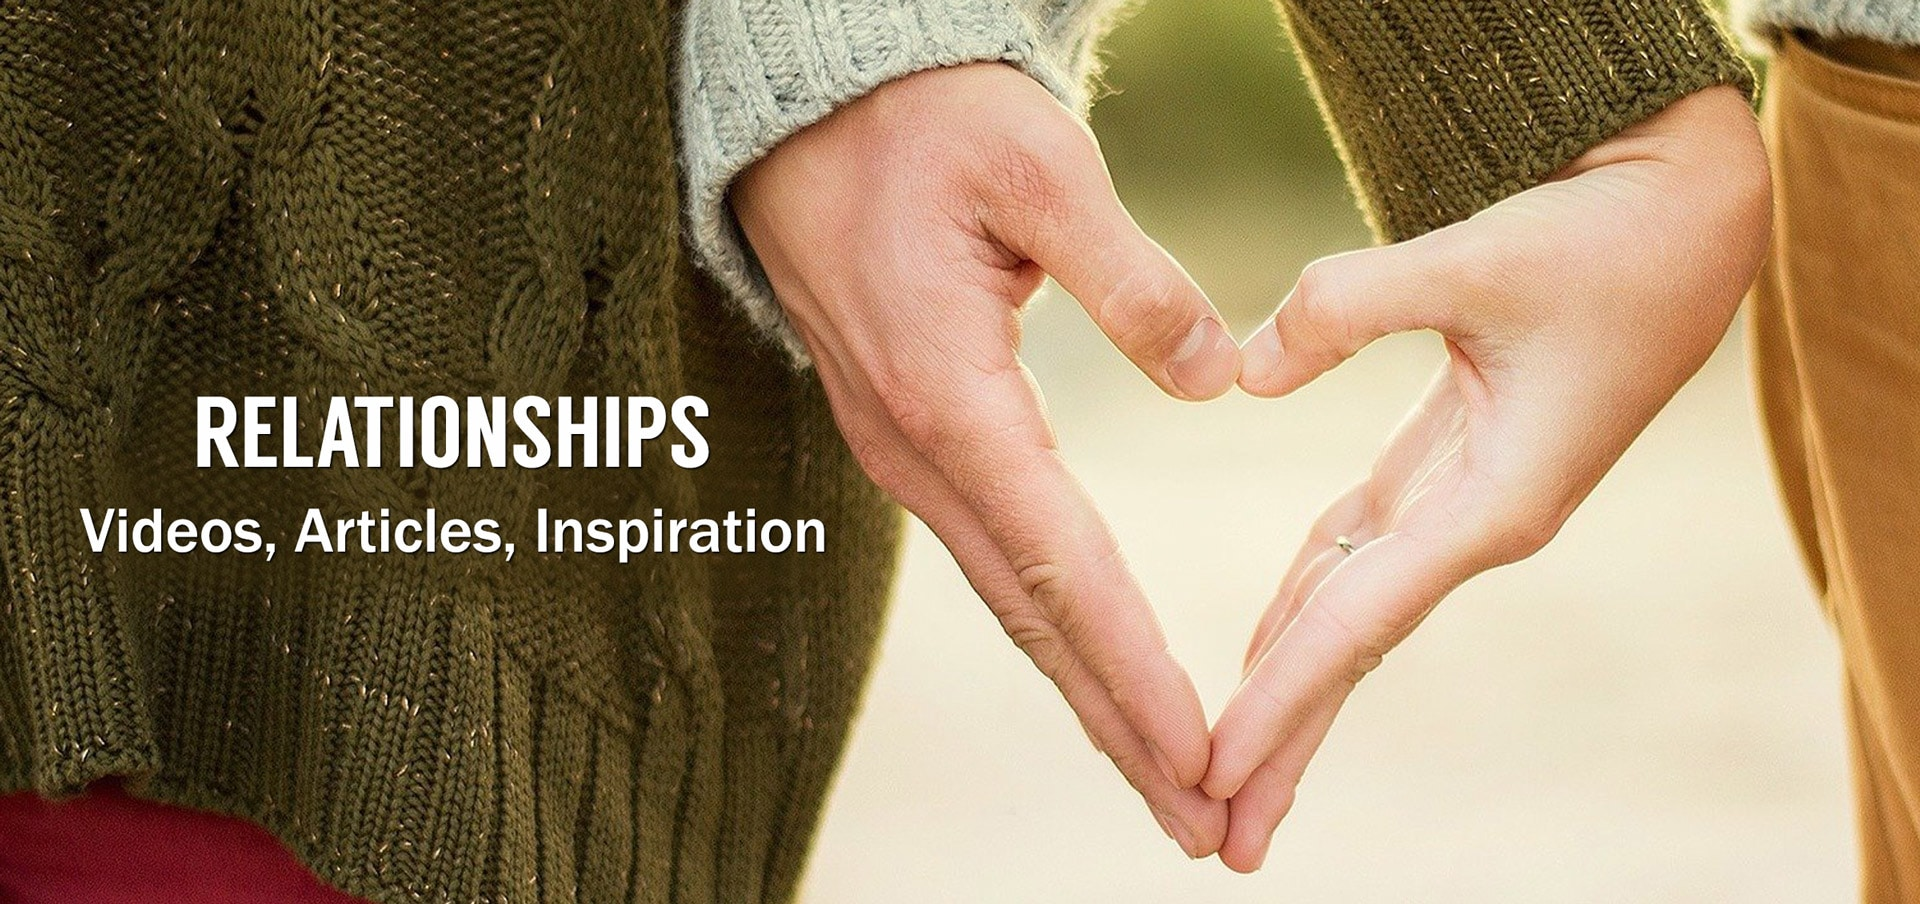 Relationships - Videos, Articles, Inspiration